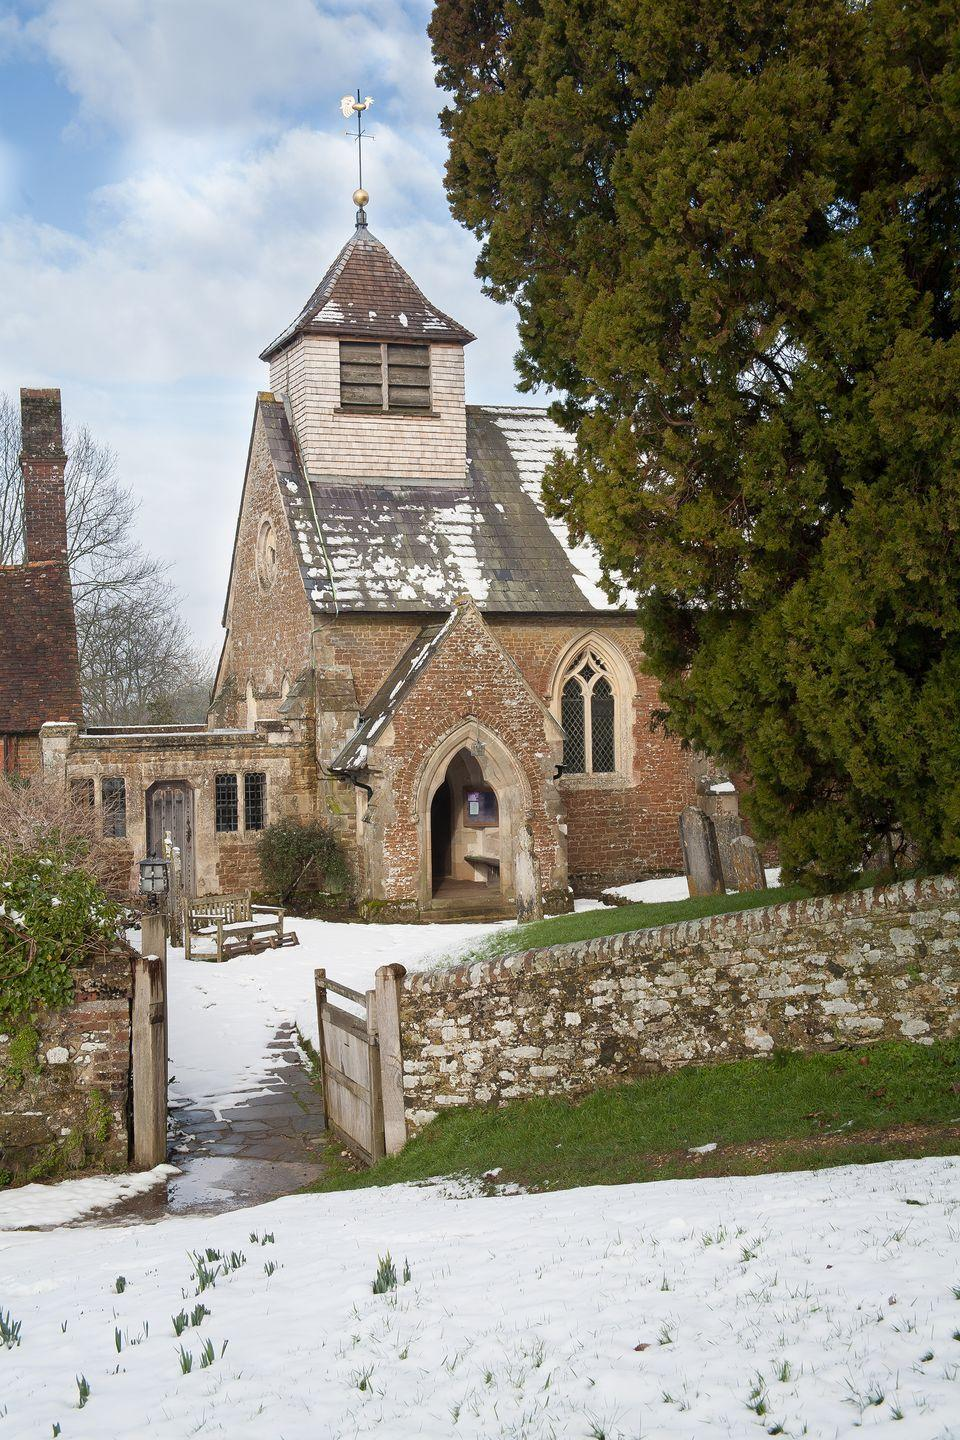 <p>A pretty collection of brick and flint cottages, a Jacobean Manor and the Old Rectory create a winter wonderland scene in Hambledon, nestled in one of the most attractive valleys of the Chiltern hills. </p>